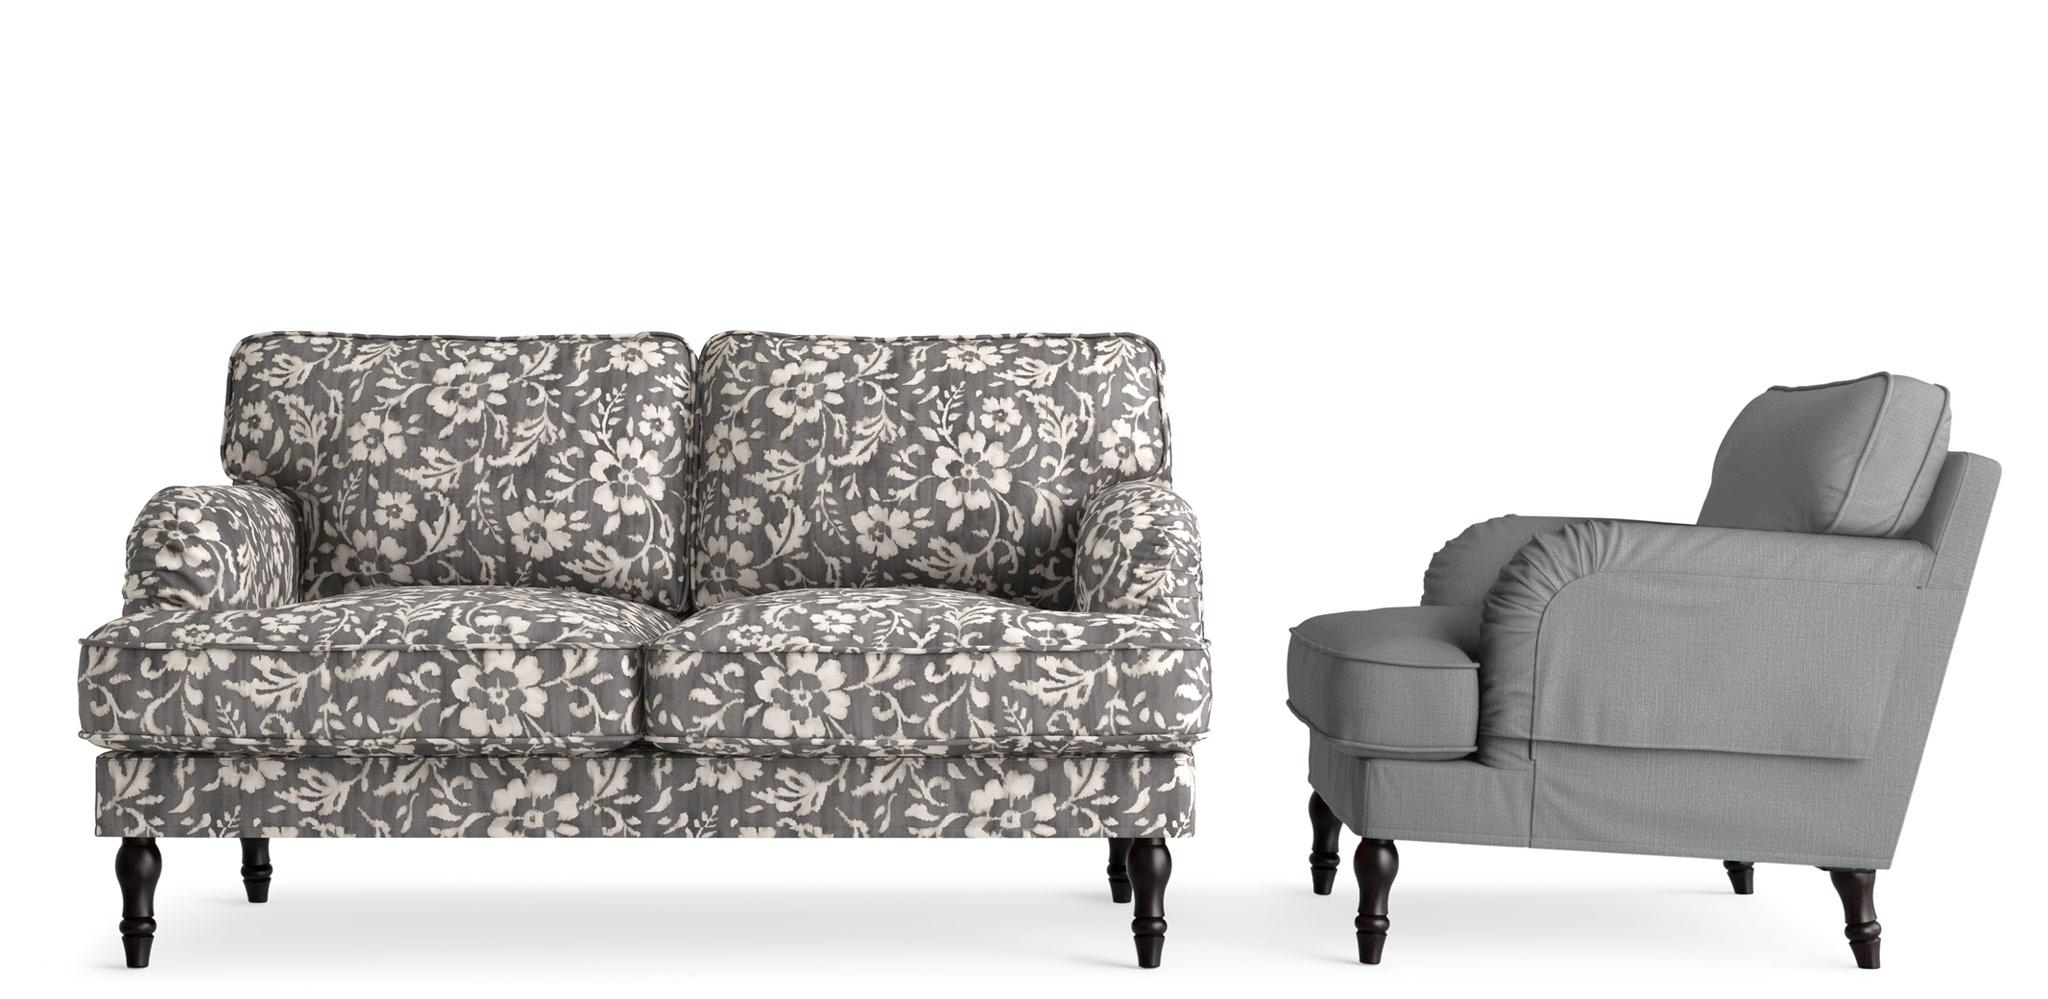 Ikea Ireland – Dublin Throughout 2019 Floral Sofas And Chairs (View 13 of 20)